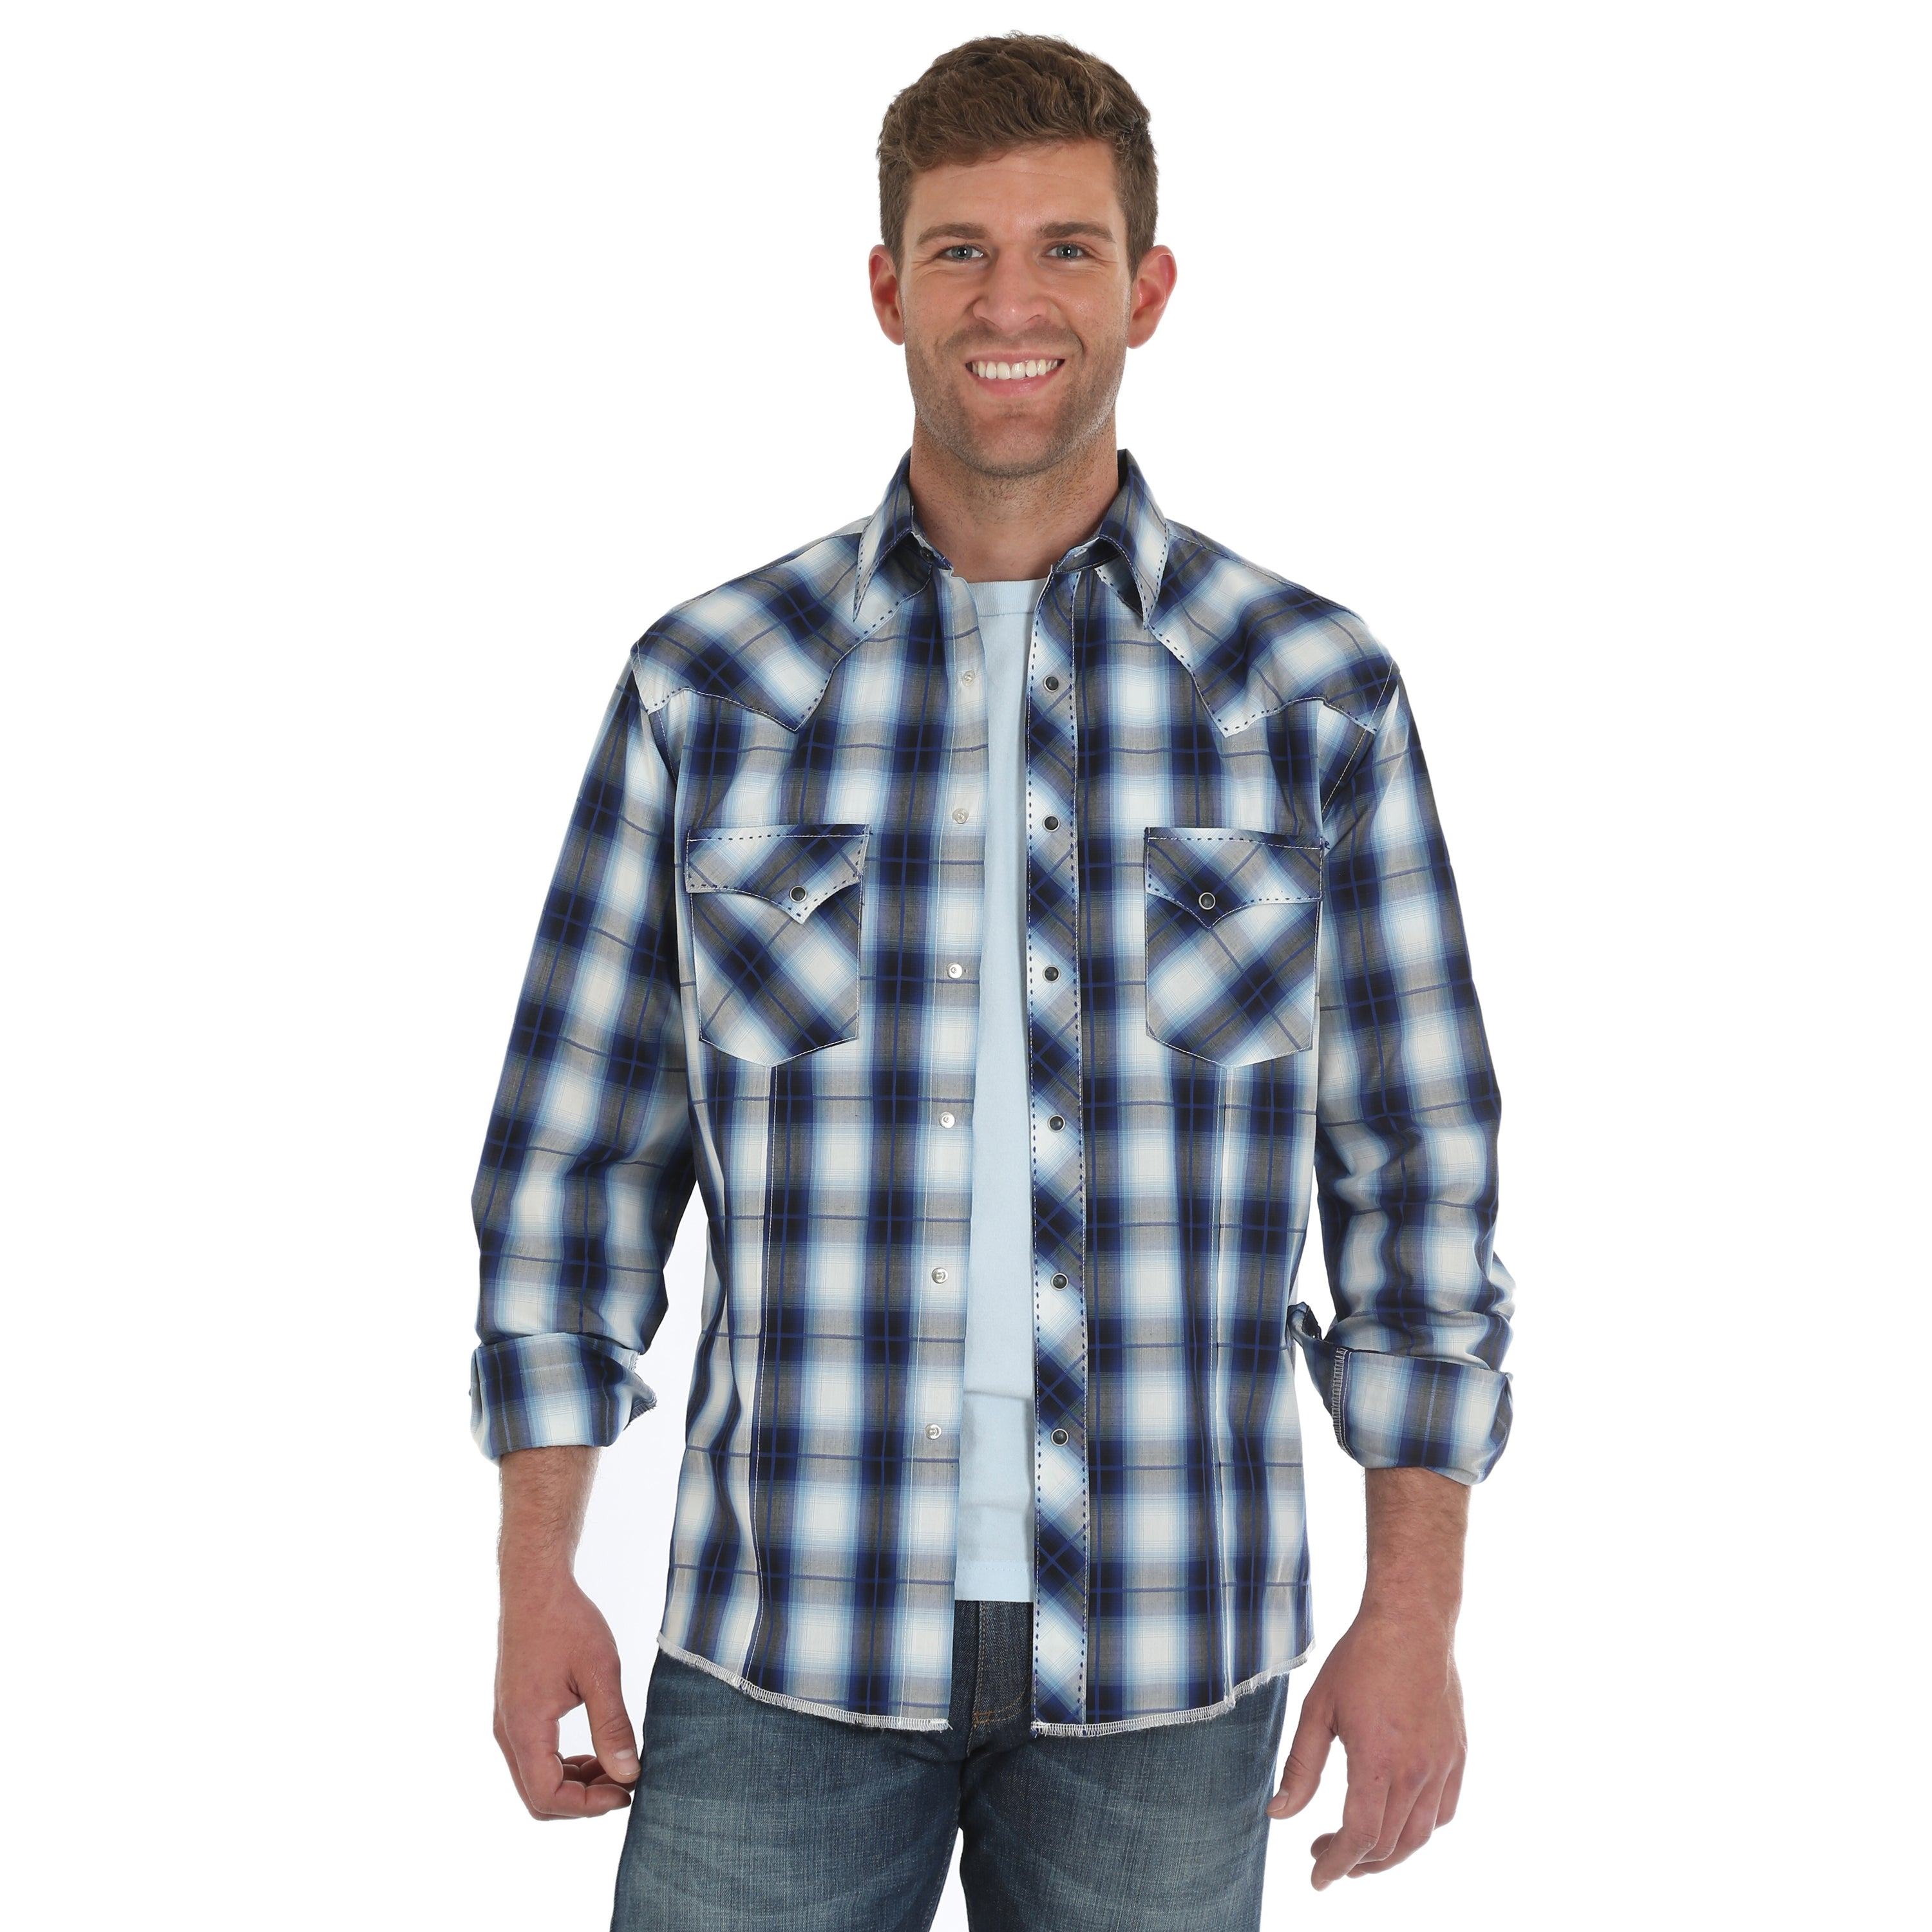 eb4eeb35 +Other Categories. Wrangler Men's Shirts · Wrangler Men's Fashion Snap Long  Sleeve Blue ...